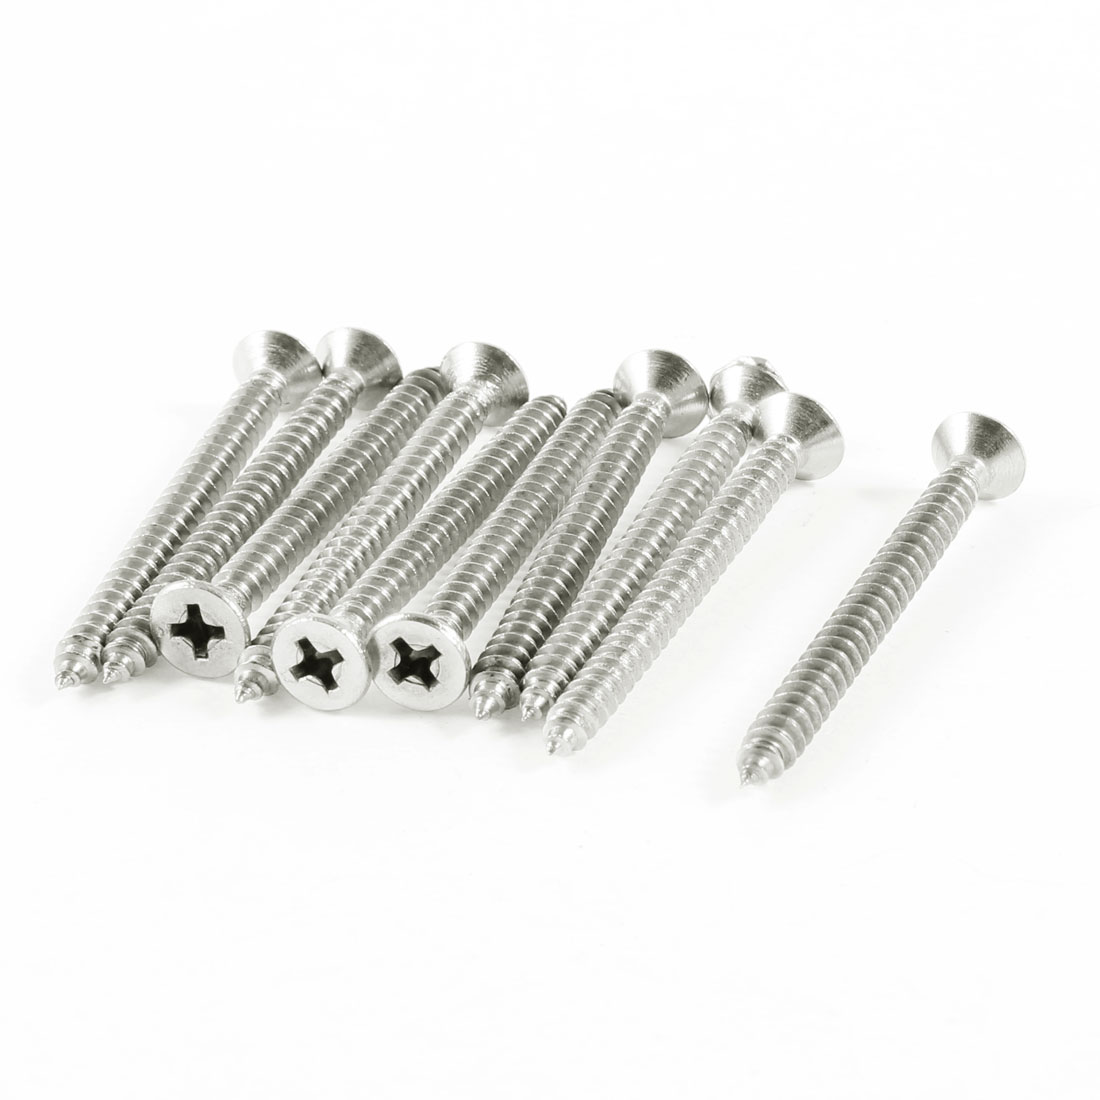 10 Pcs 44mm x 4mm Thread Phillips Head Self Tapping Screw Silver Tone